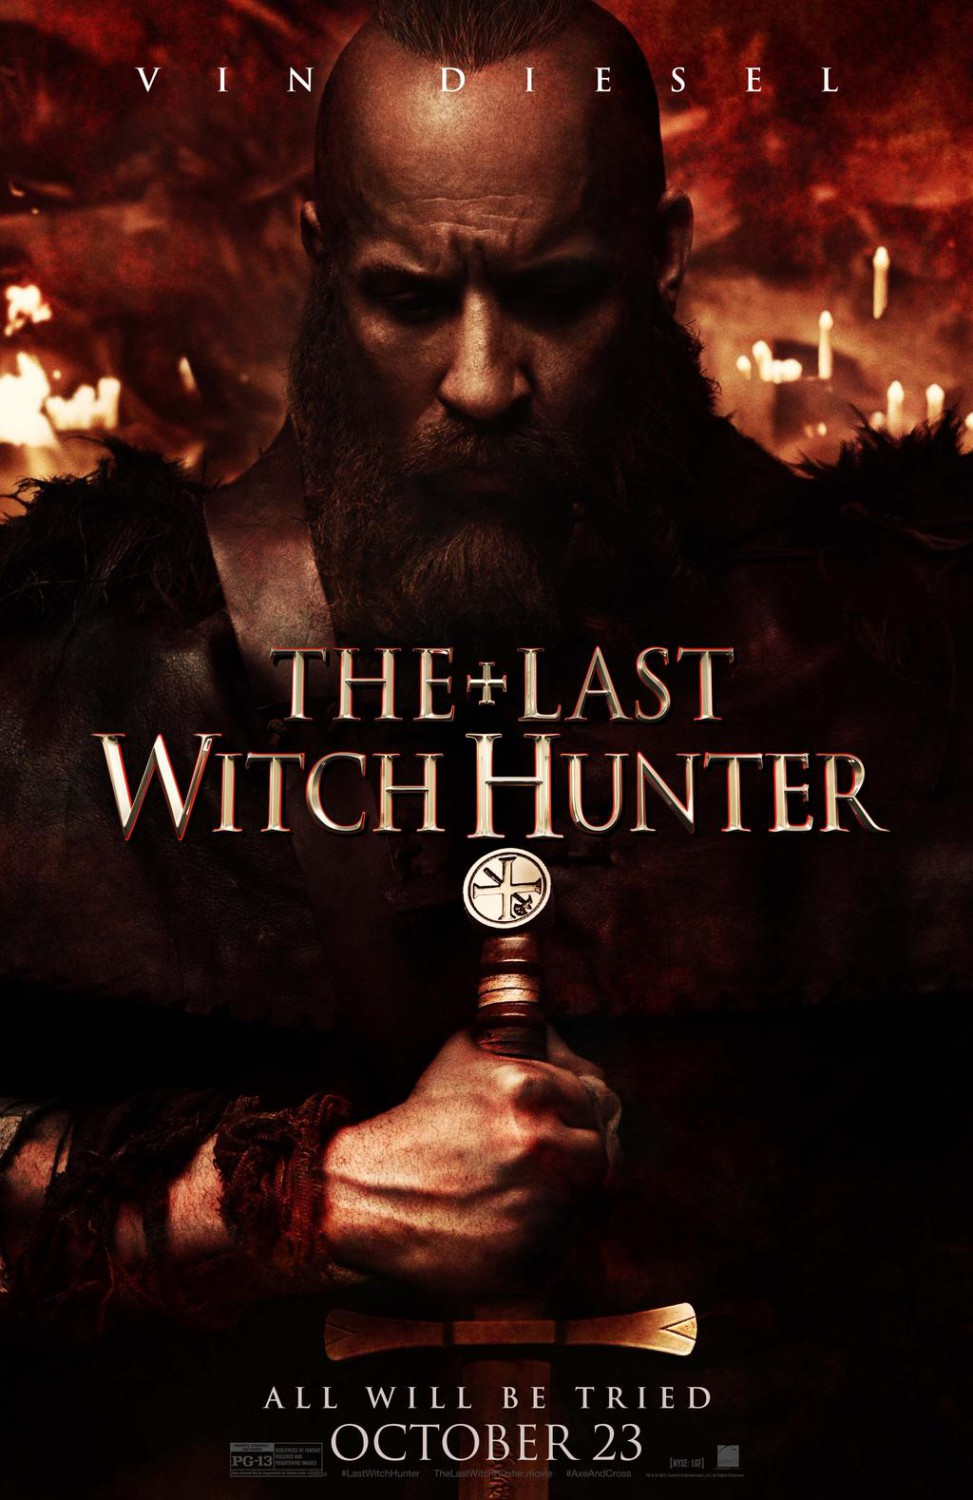 The Last Witch Hunter Filmstarts